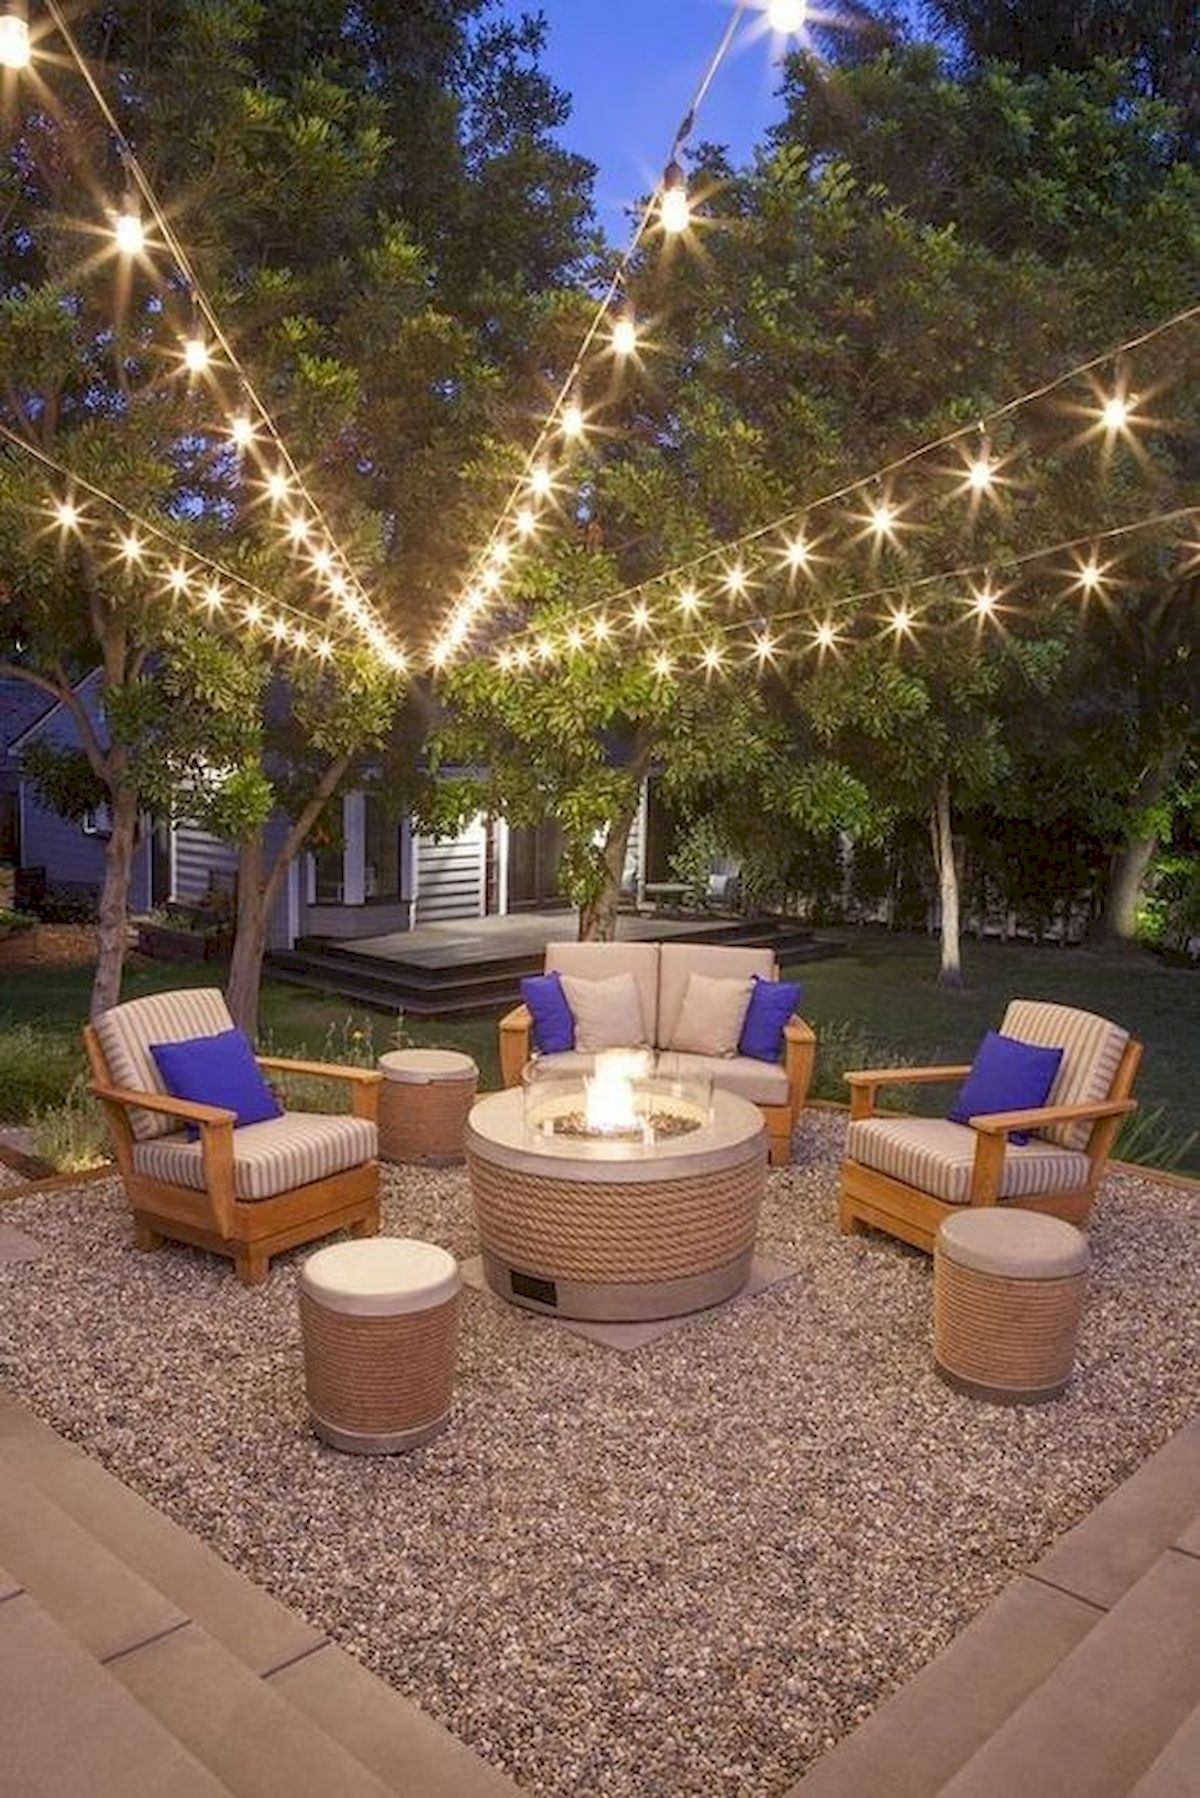 55 Awesome Backyard Fire Pit Ideas For Comfortable Relax ...